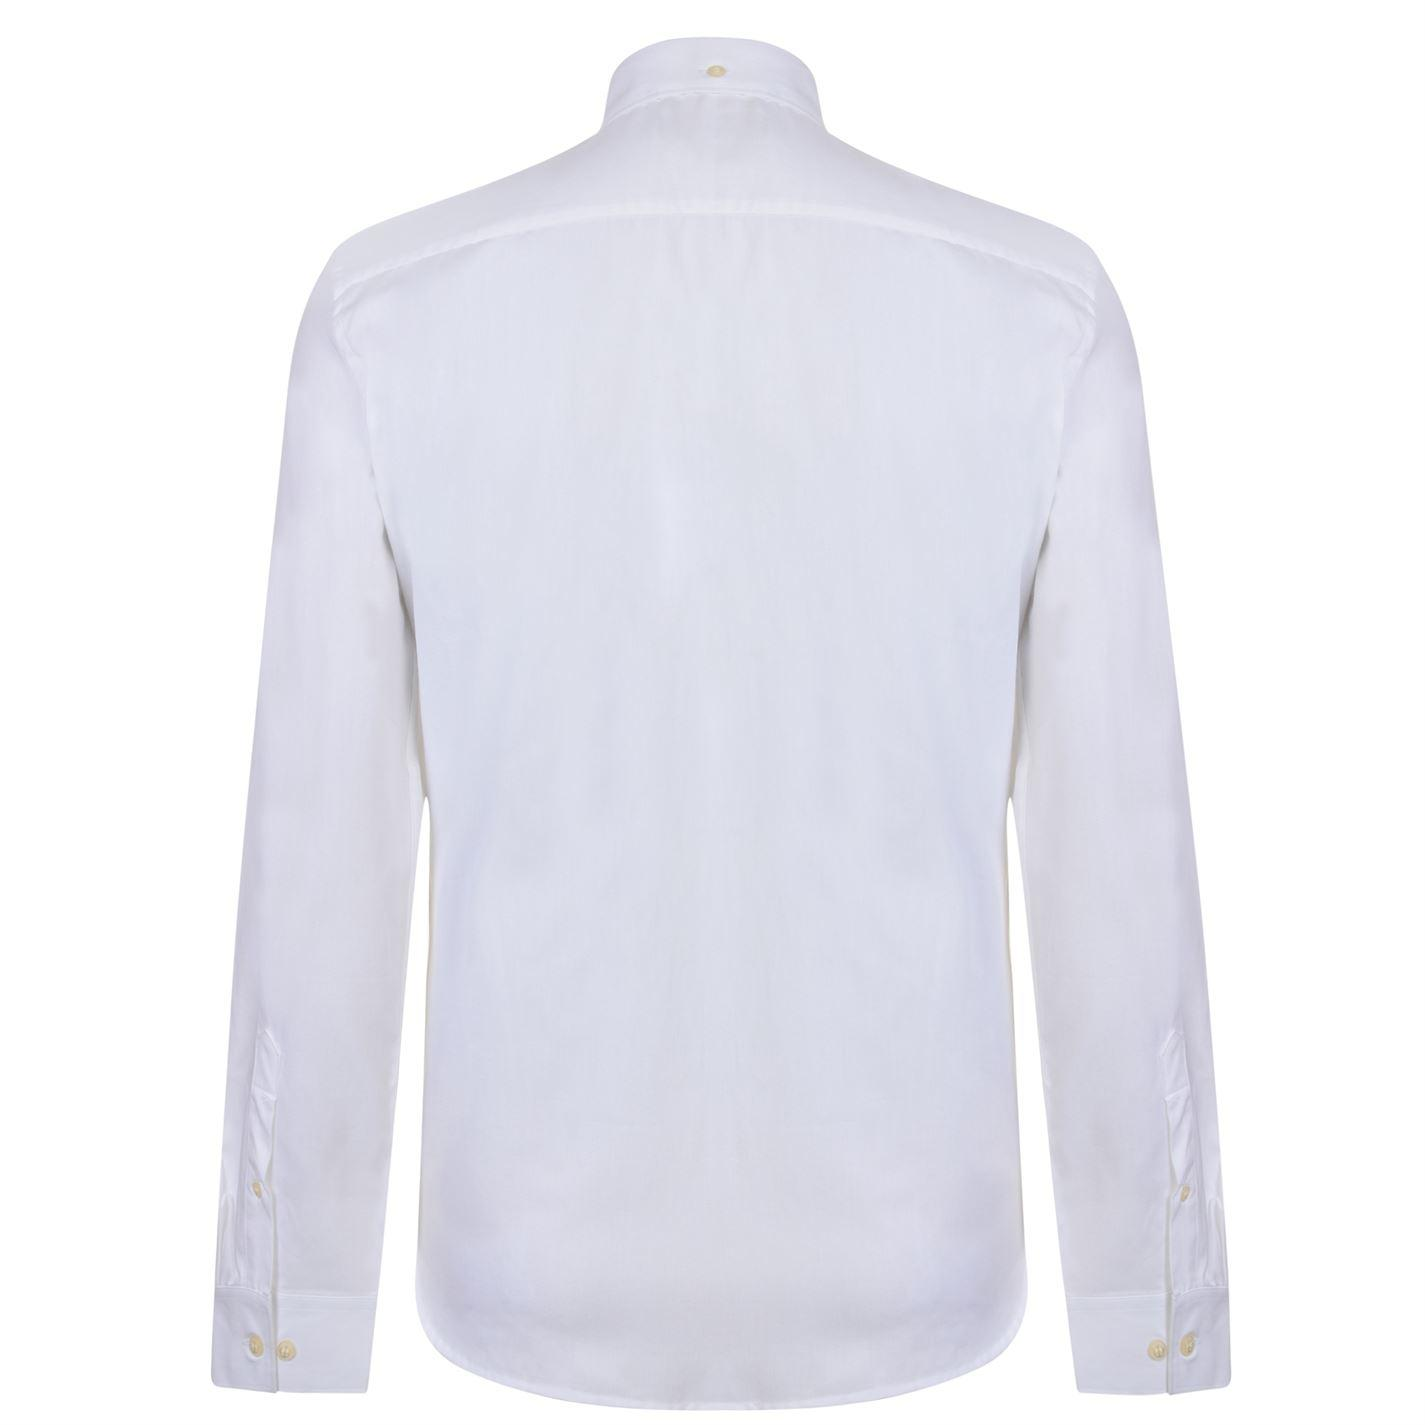 finest selection 3e0b4 fc6c8 french-connection-White-Long-Sleeve-Oxford-Shirt.jpeg